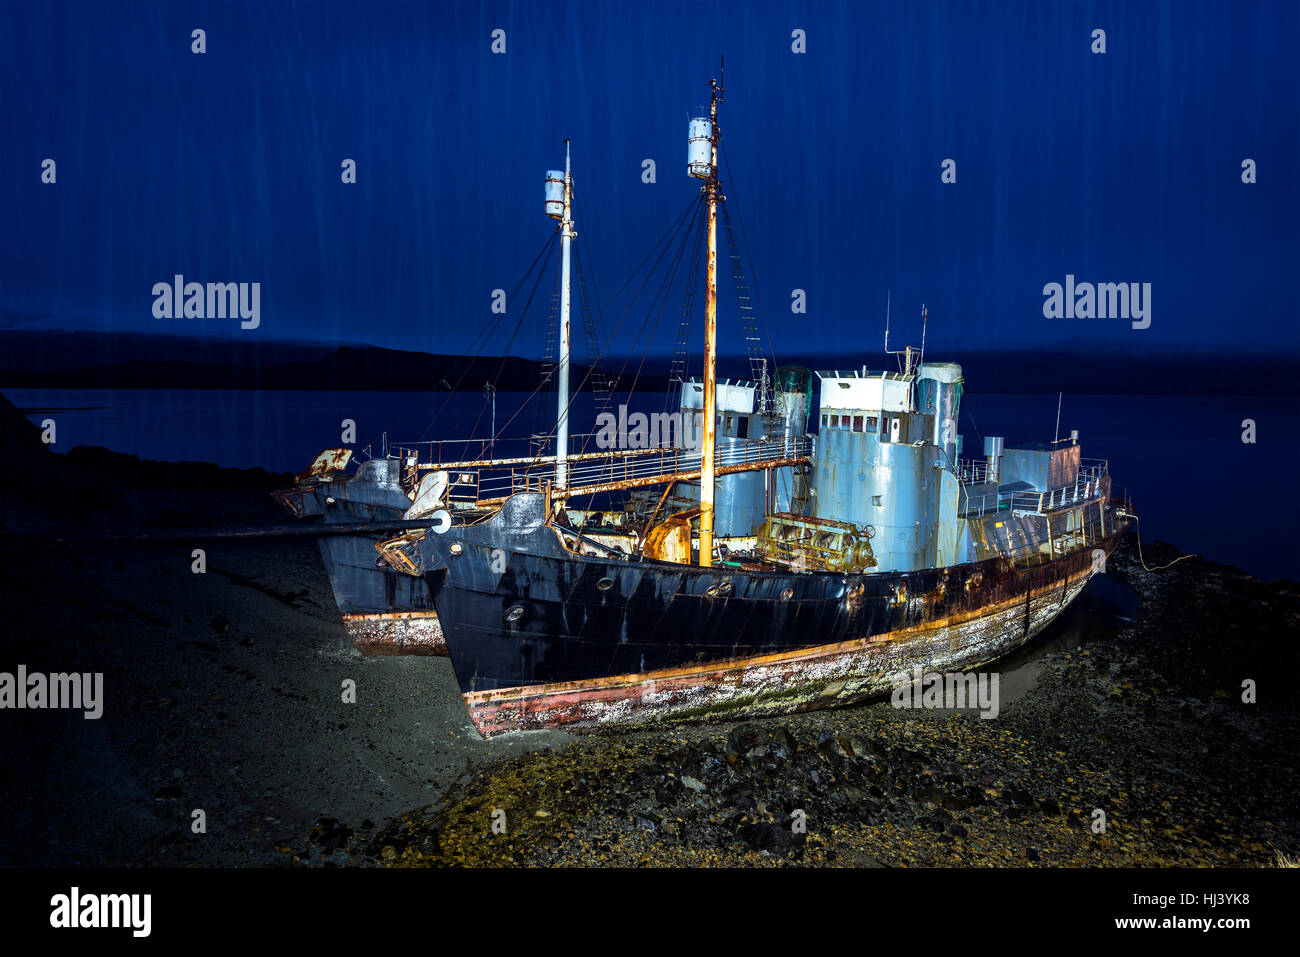 Two abandoned whaling ships rest on a remote beach after Iceland scrapped their whaling program. Ships are light - Stock Image